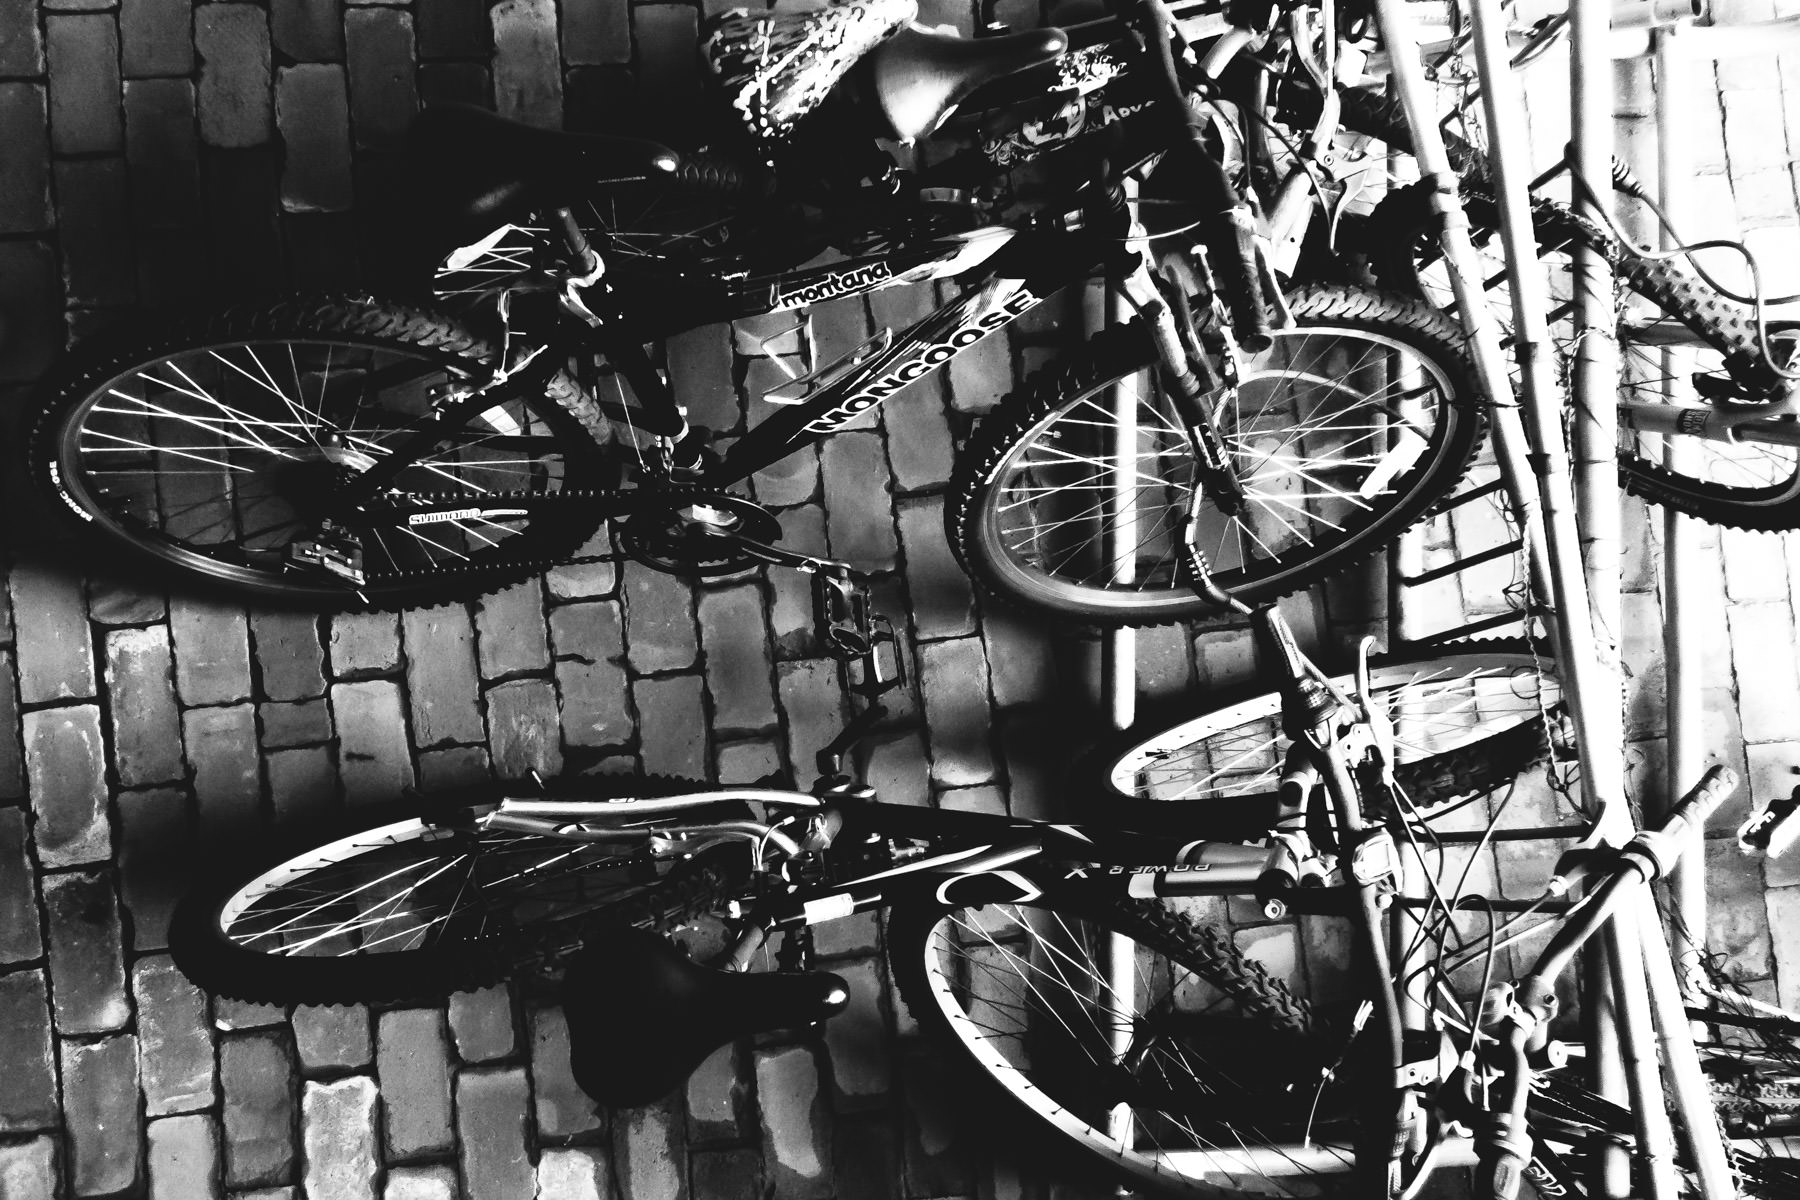 Bikes parked in a stairwell of a residential building in Addison, Texas.